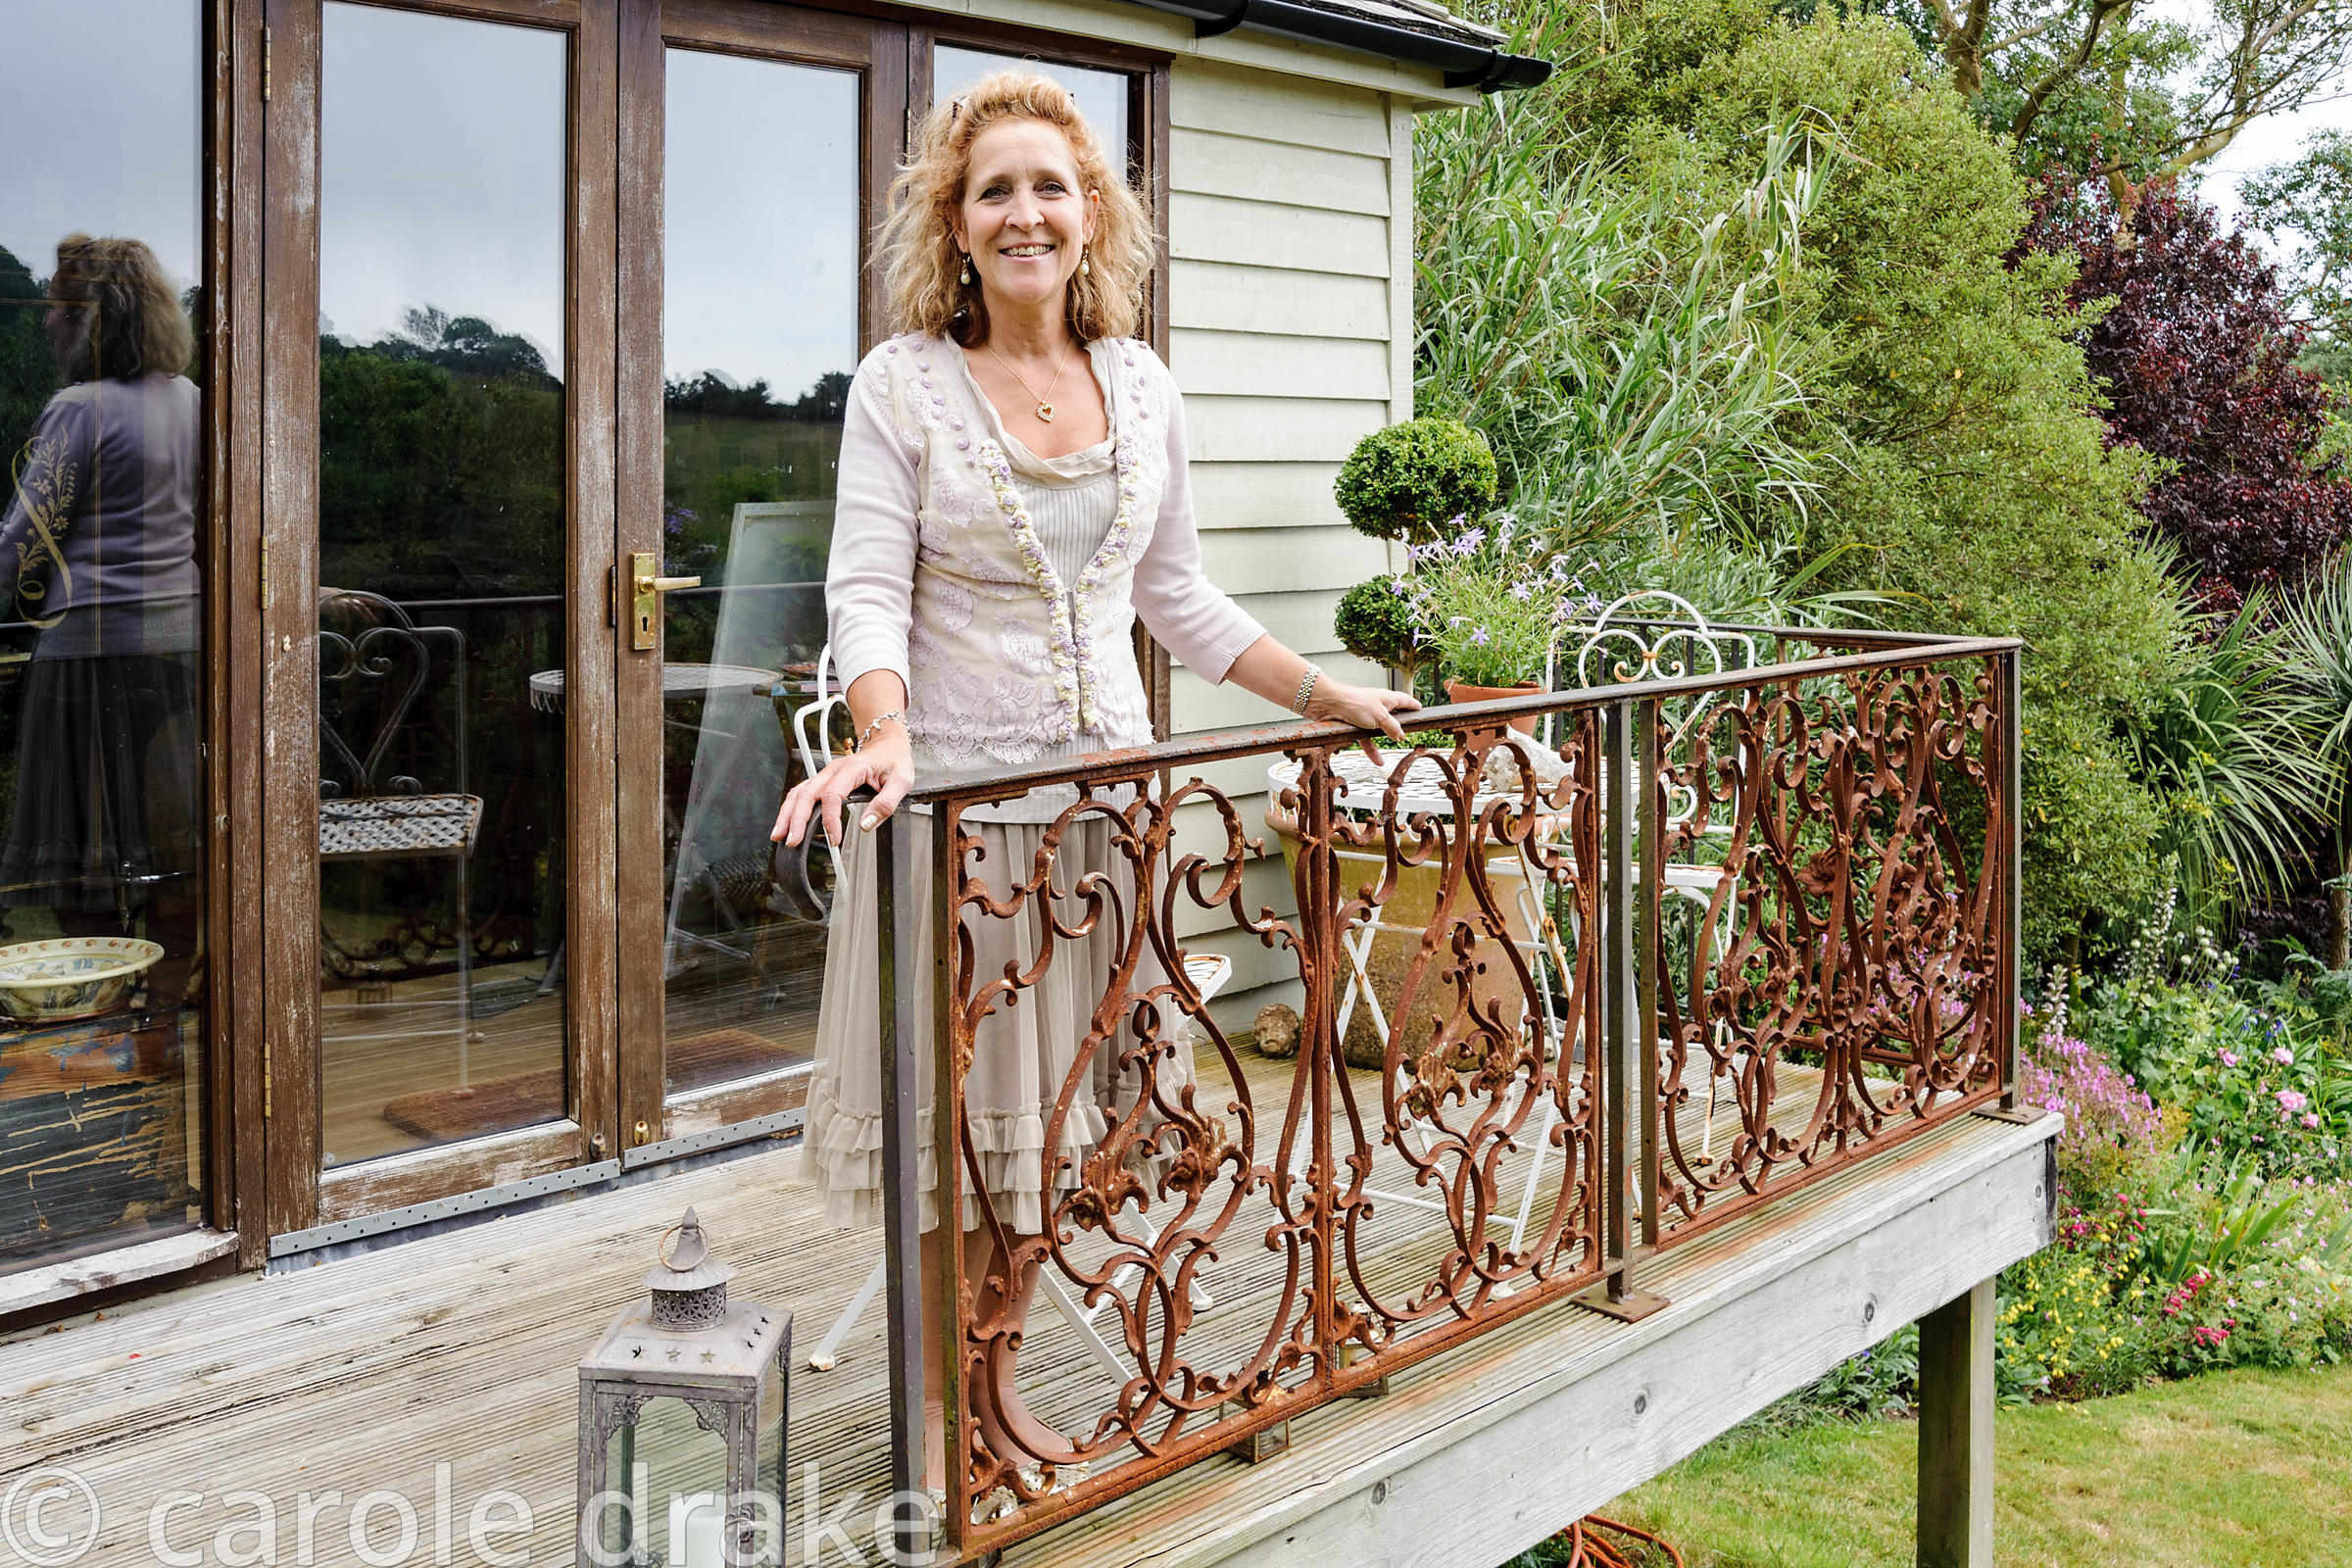 Debbie Bell on the balcony of her garden studio.